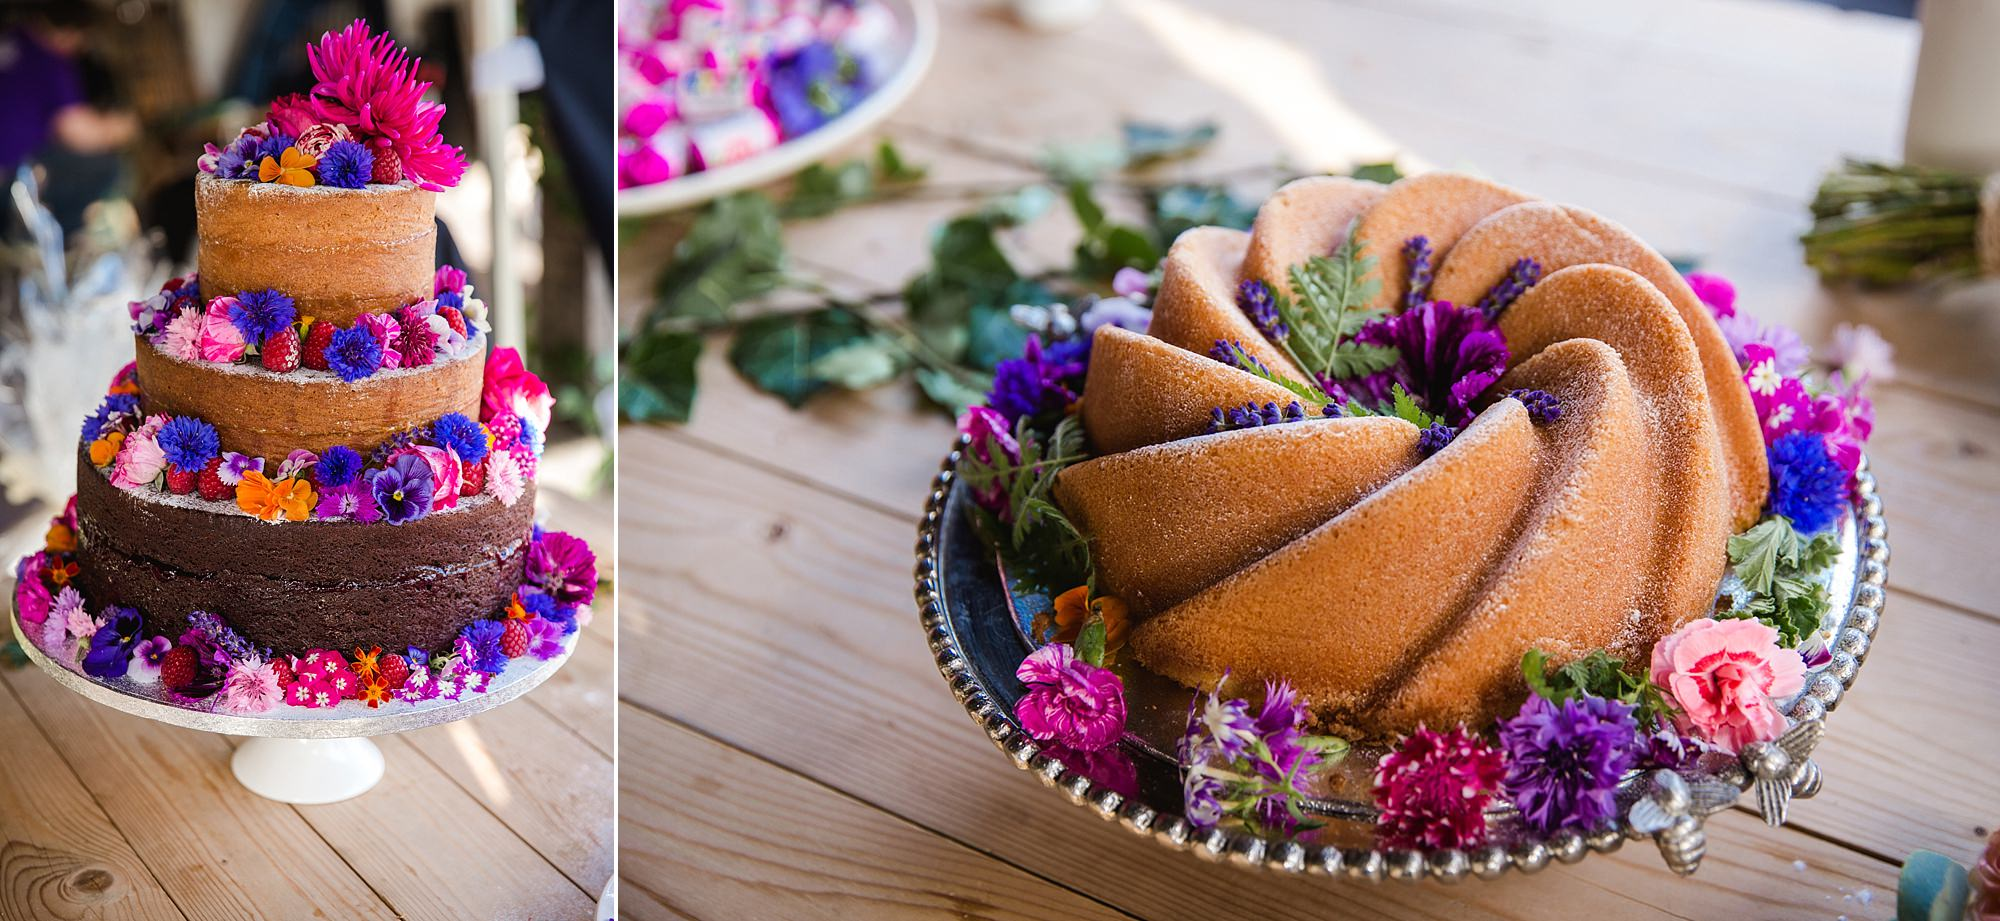 Isis Farmhouse Oxford Wedding cake decorated with real edible flowers